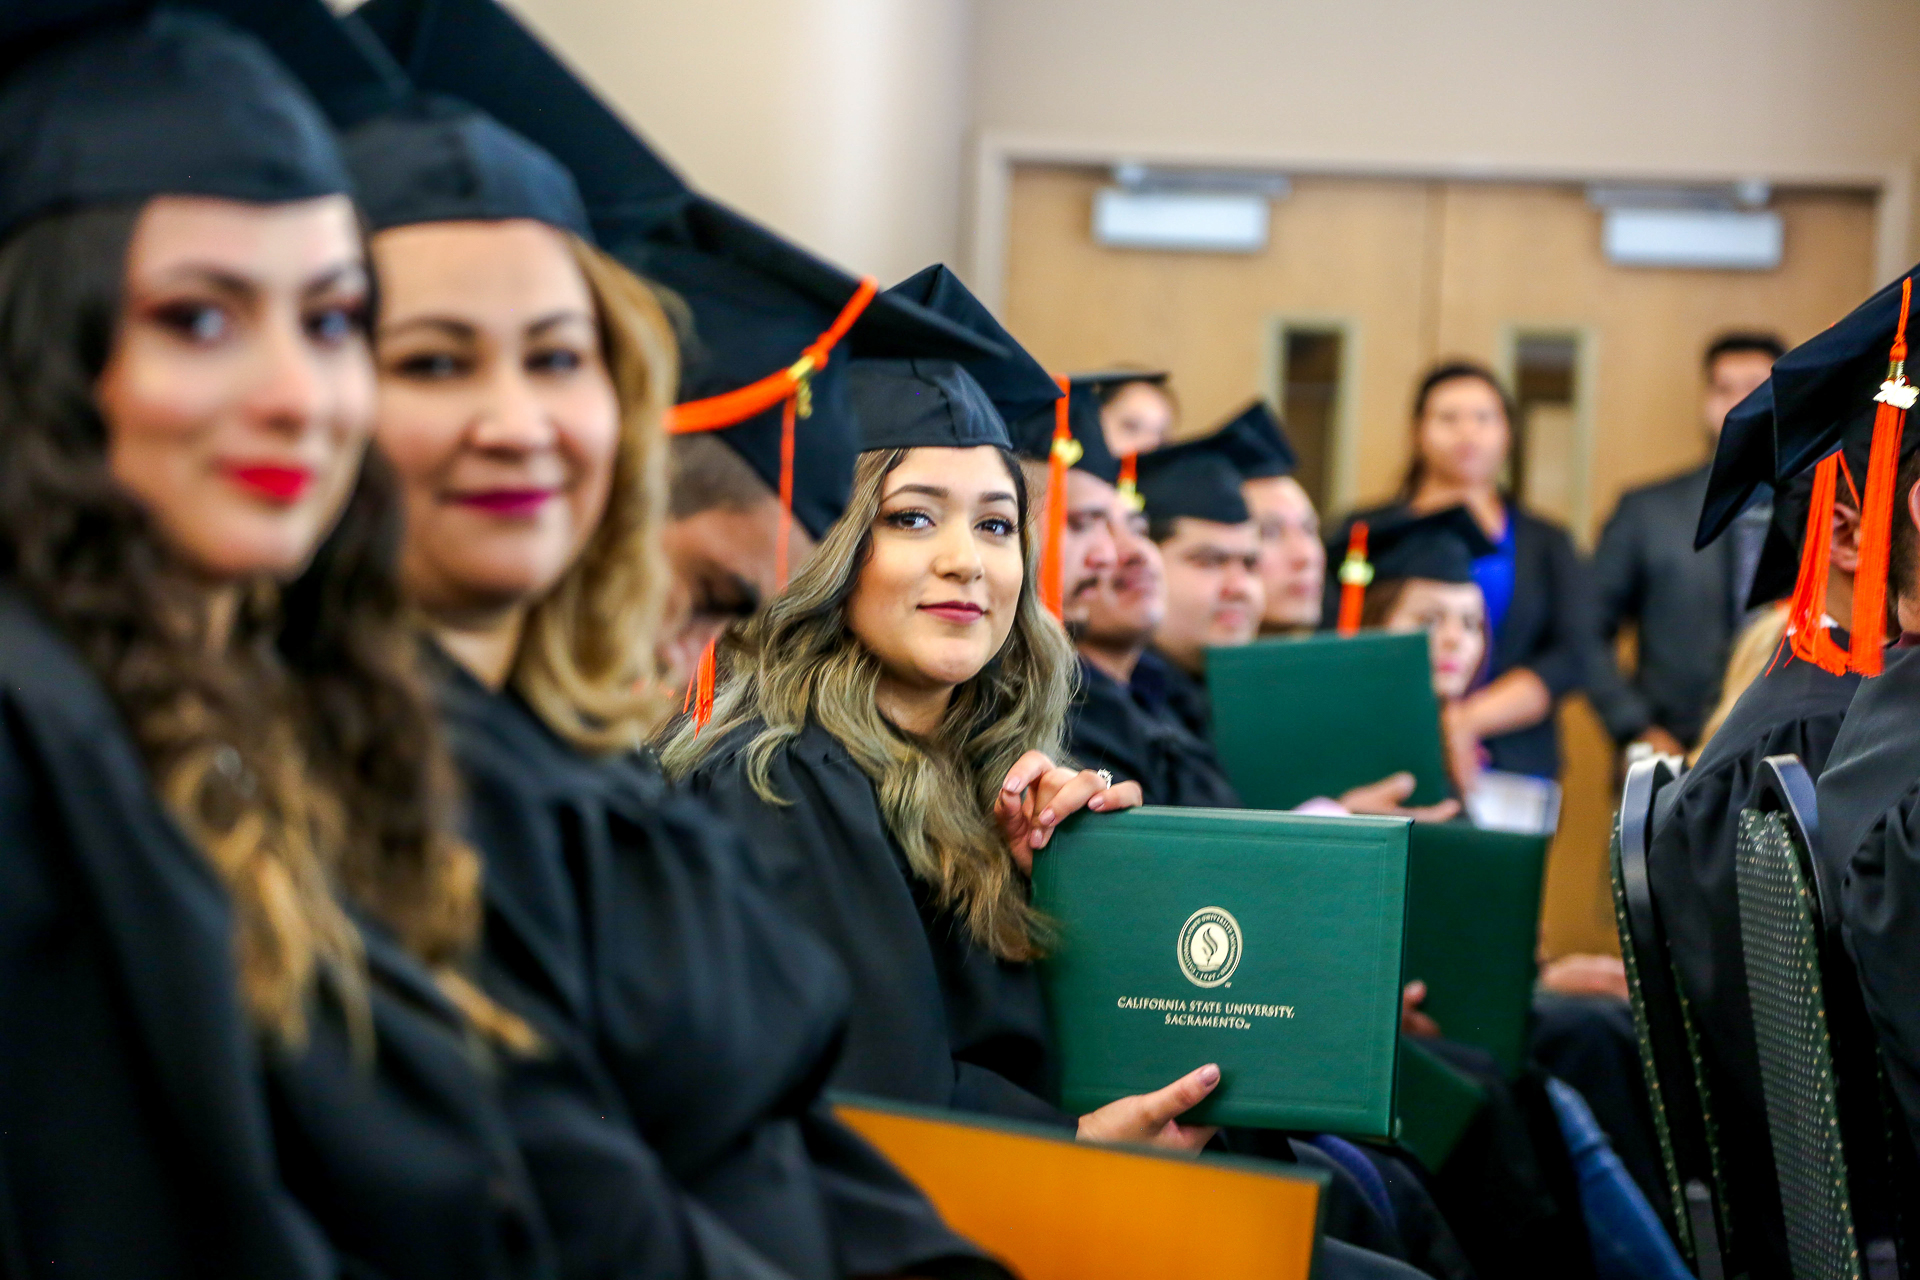 Graduates in caps and gowns, one of whom is holding a green Sac State diploma